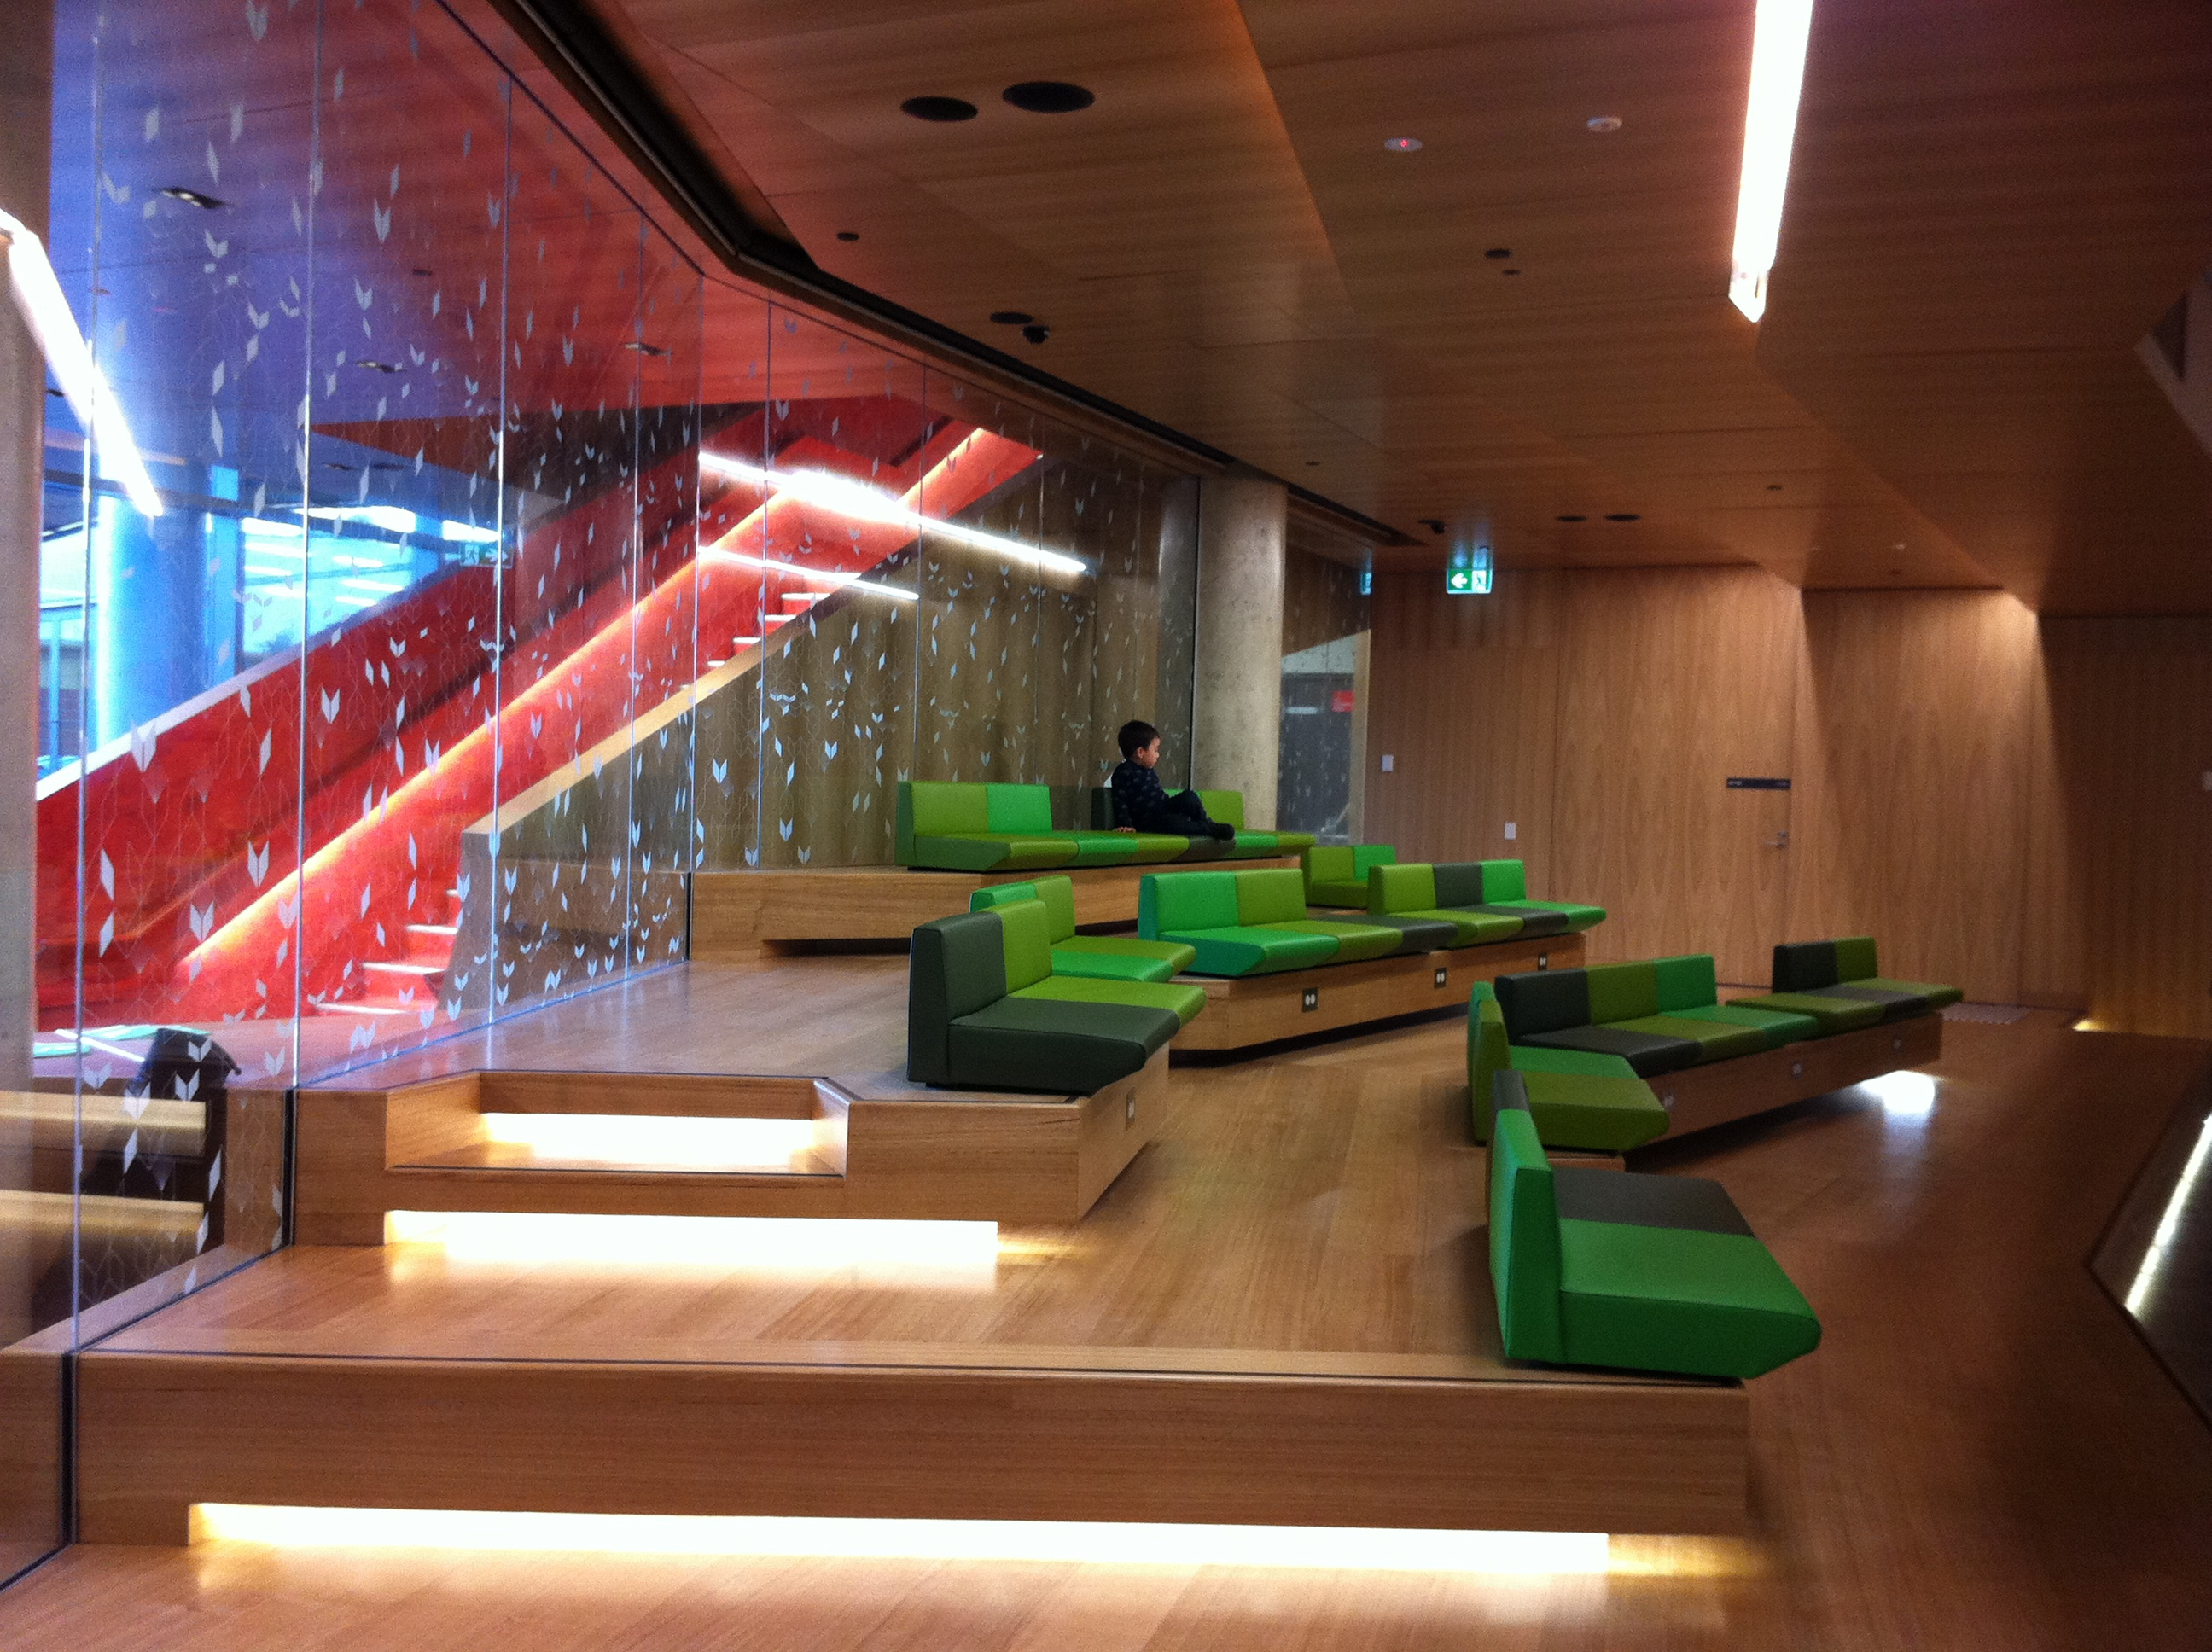 Tour of the jeffrey smart building adelaide